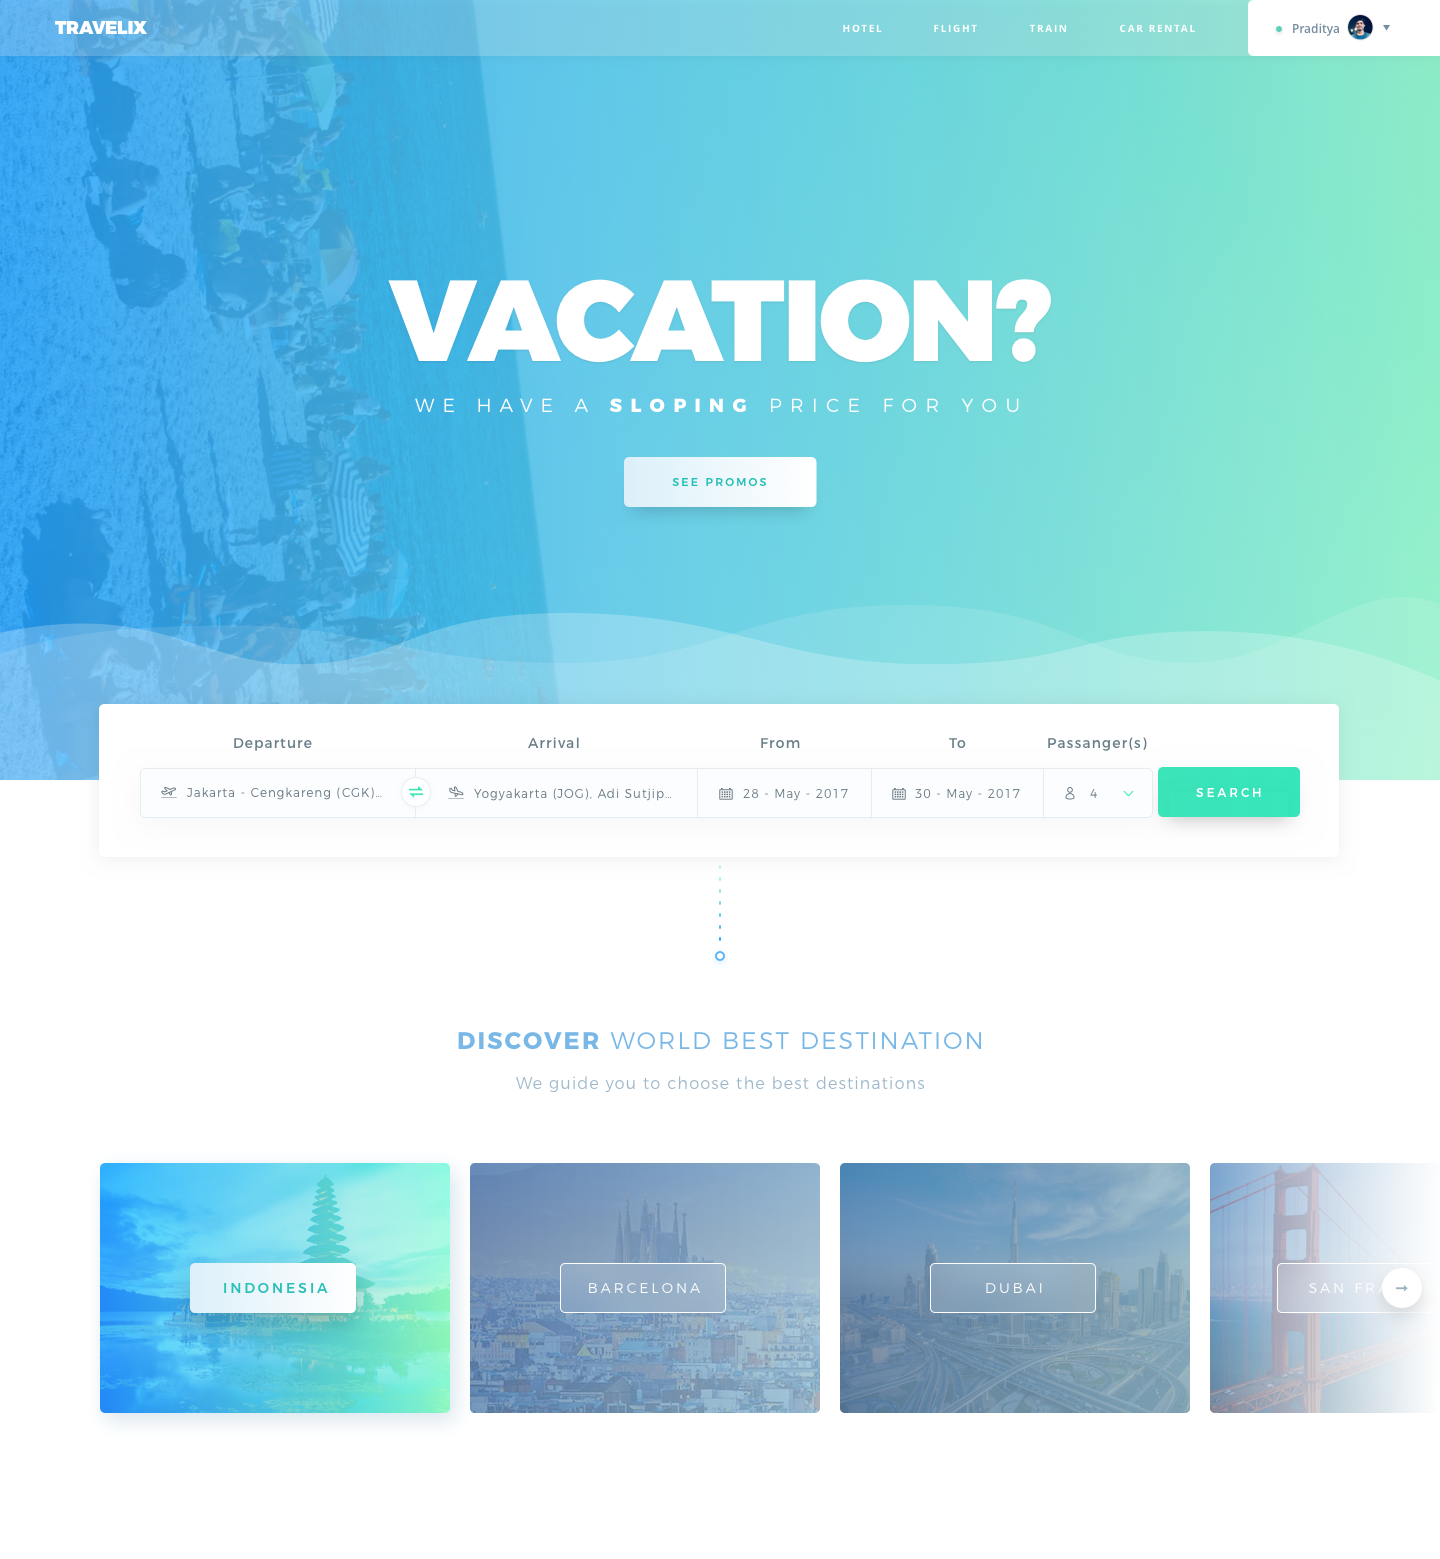 Vacation Full Vacation Trips Landing Page Vacation